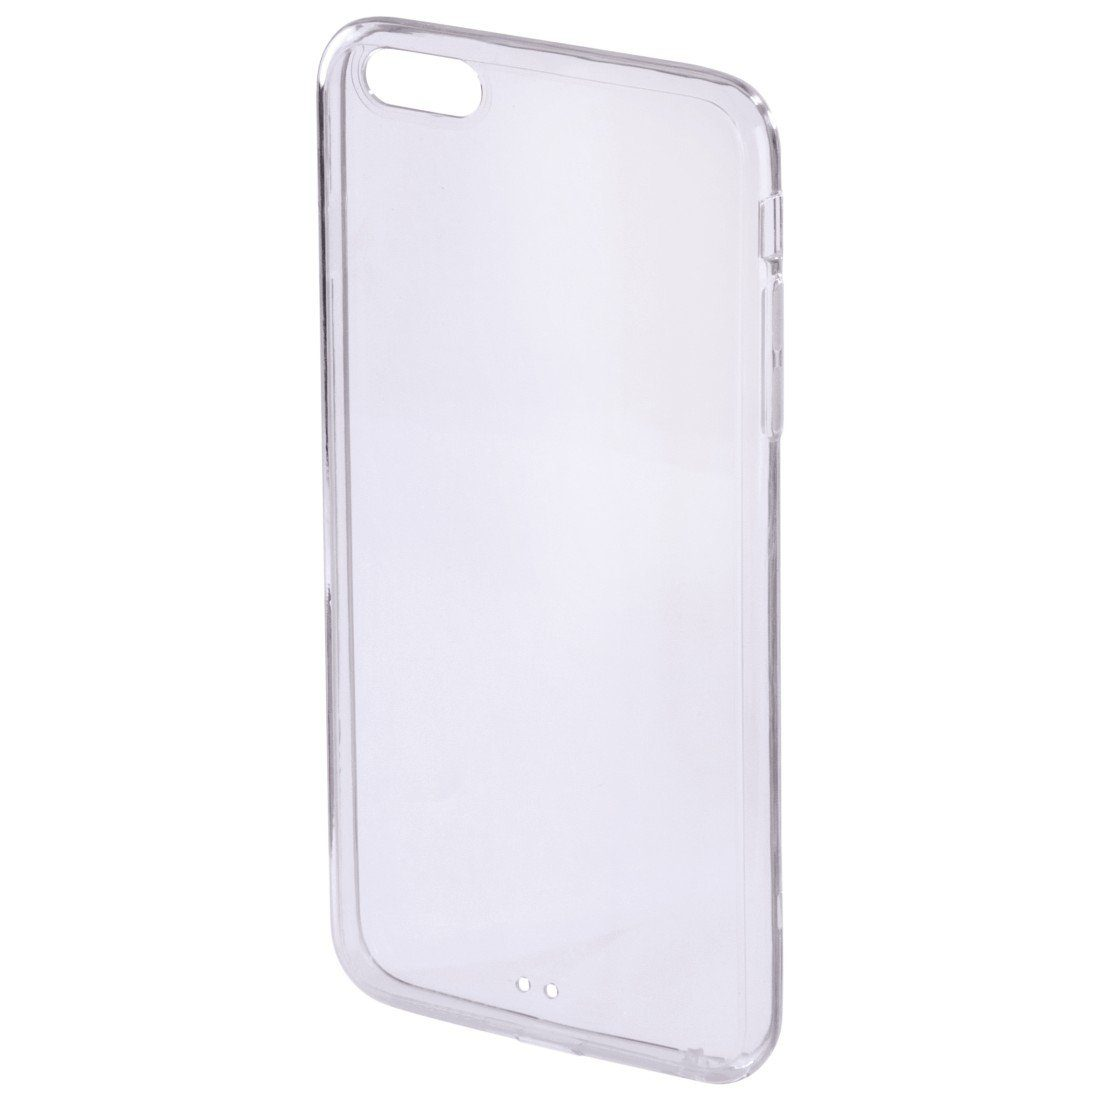 Hama Cover Frame für Apple iPhone 6 Plus/6s Plus, Weiß